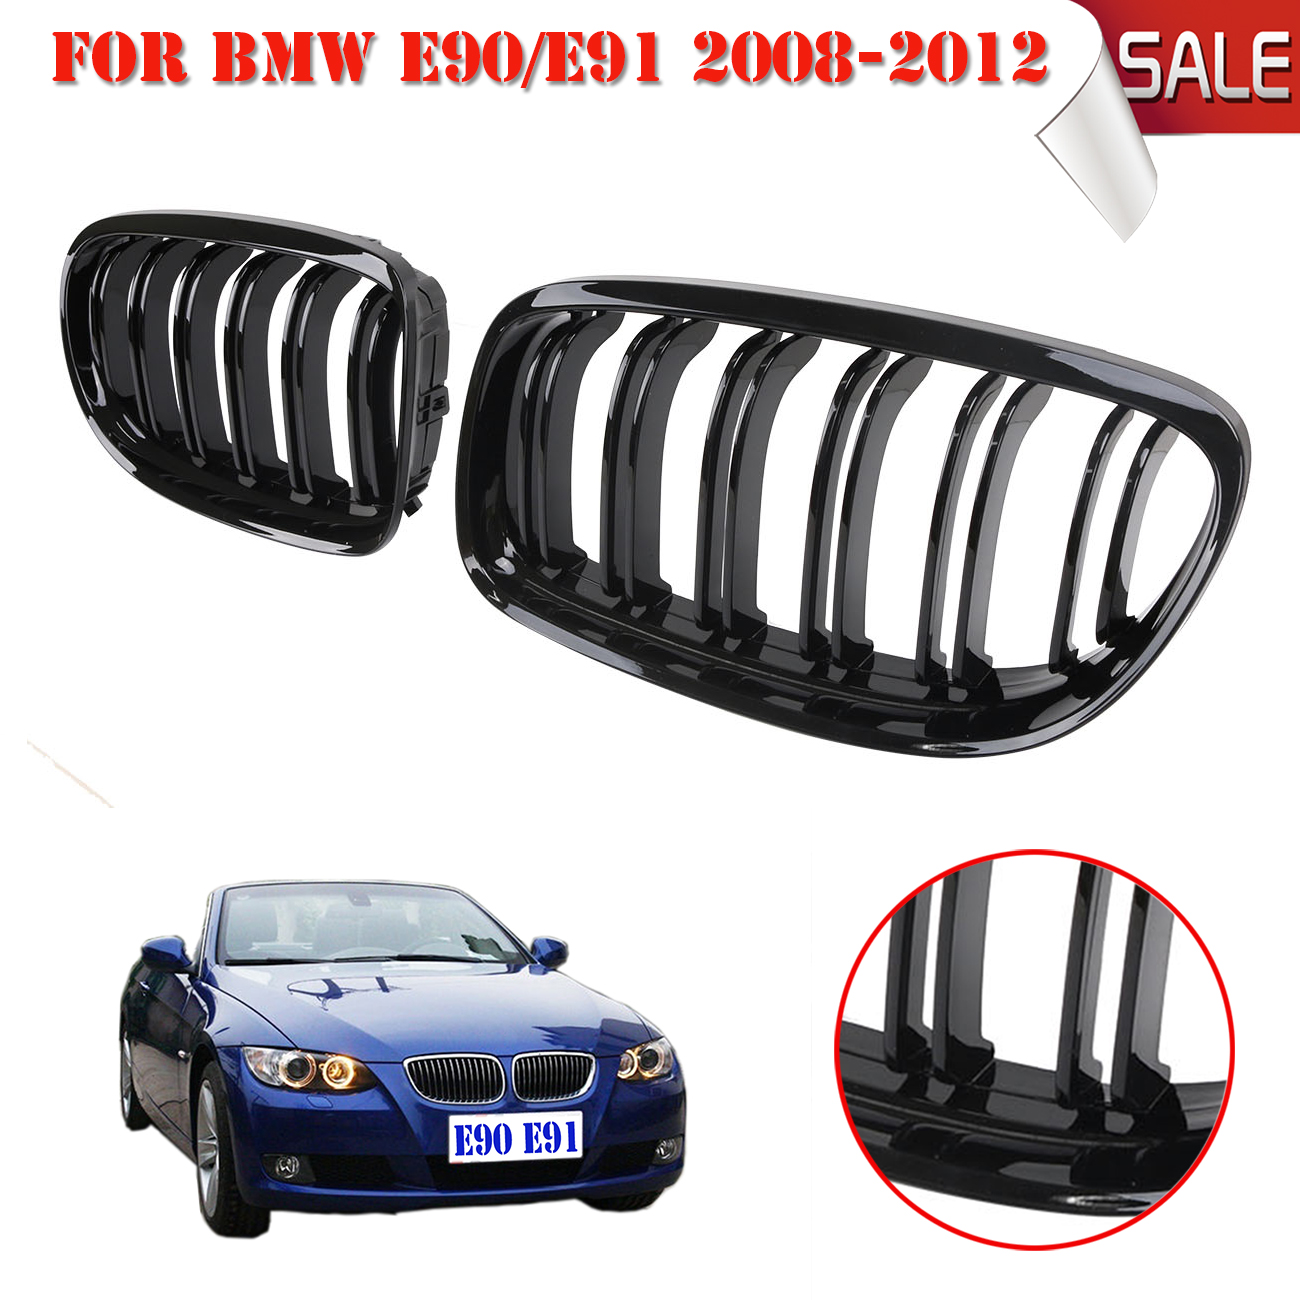 2x of Gloss Black Car Front Grilles Grill with Double Line For BMW E60 E61 5 Series 5-Serie M5 2003-2010 CAR-P341